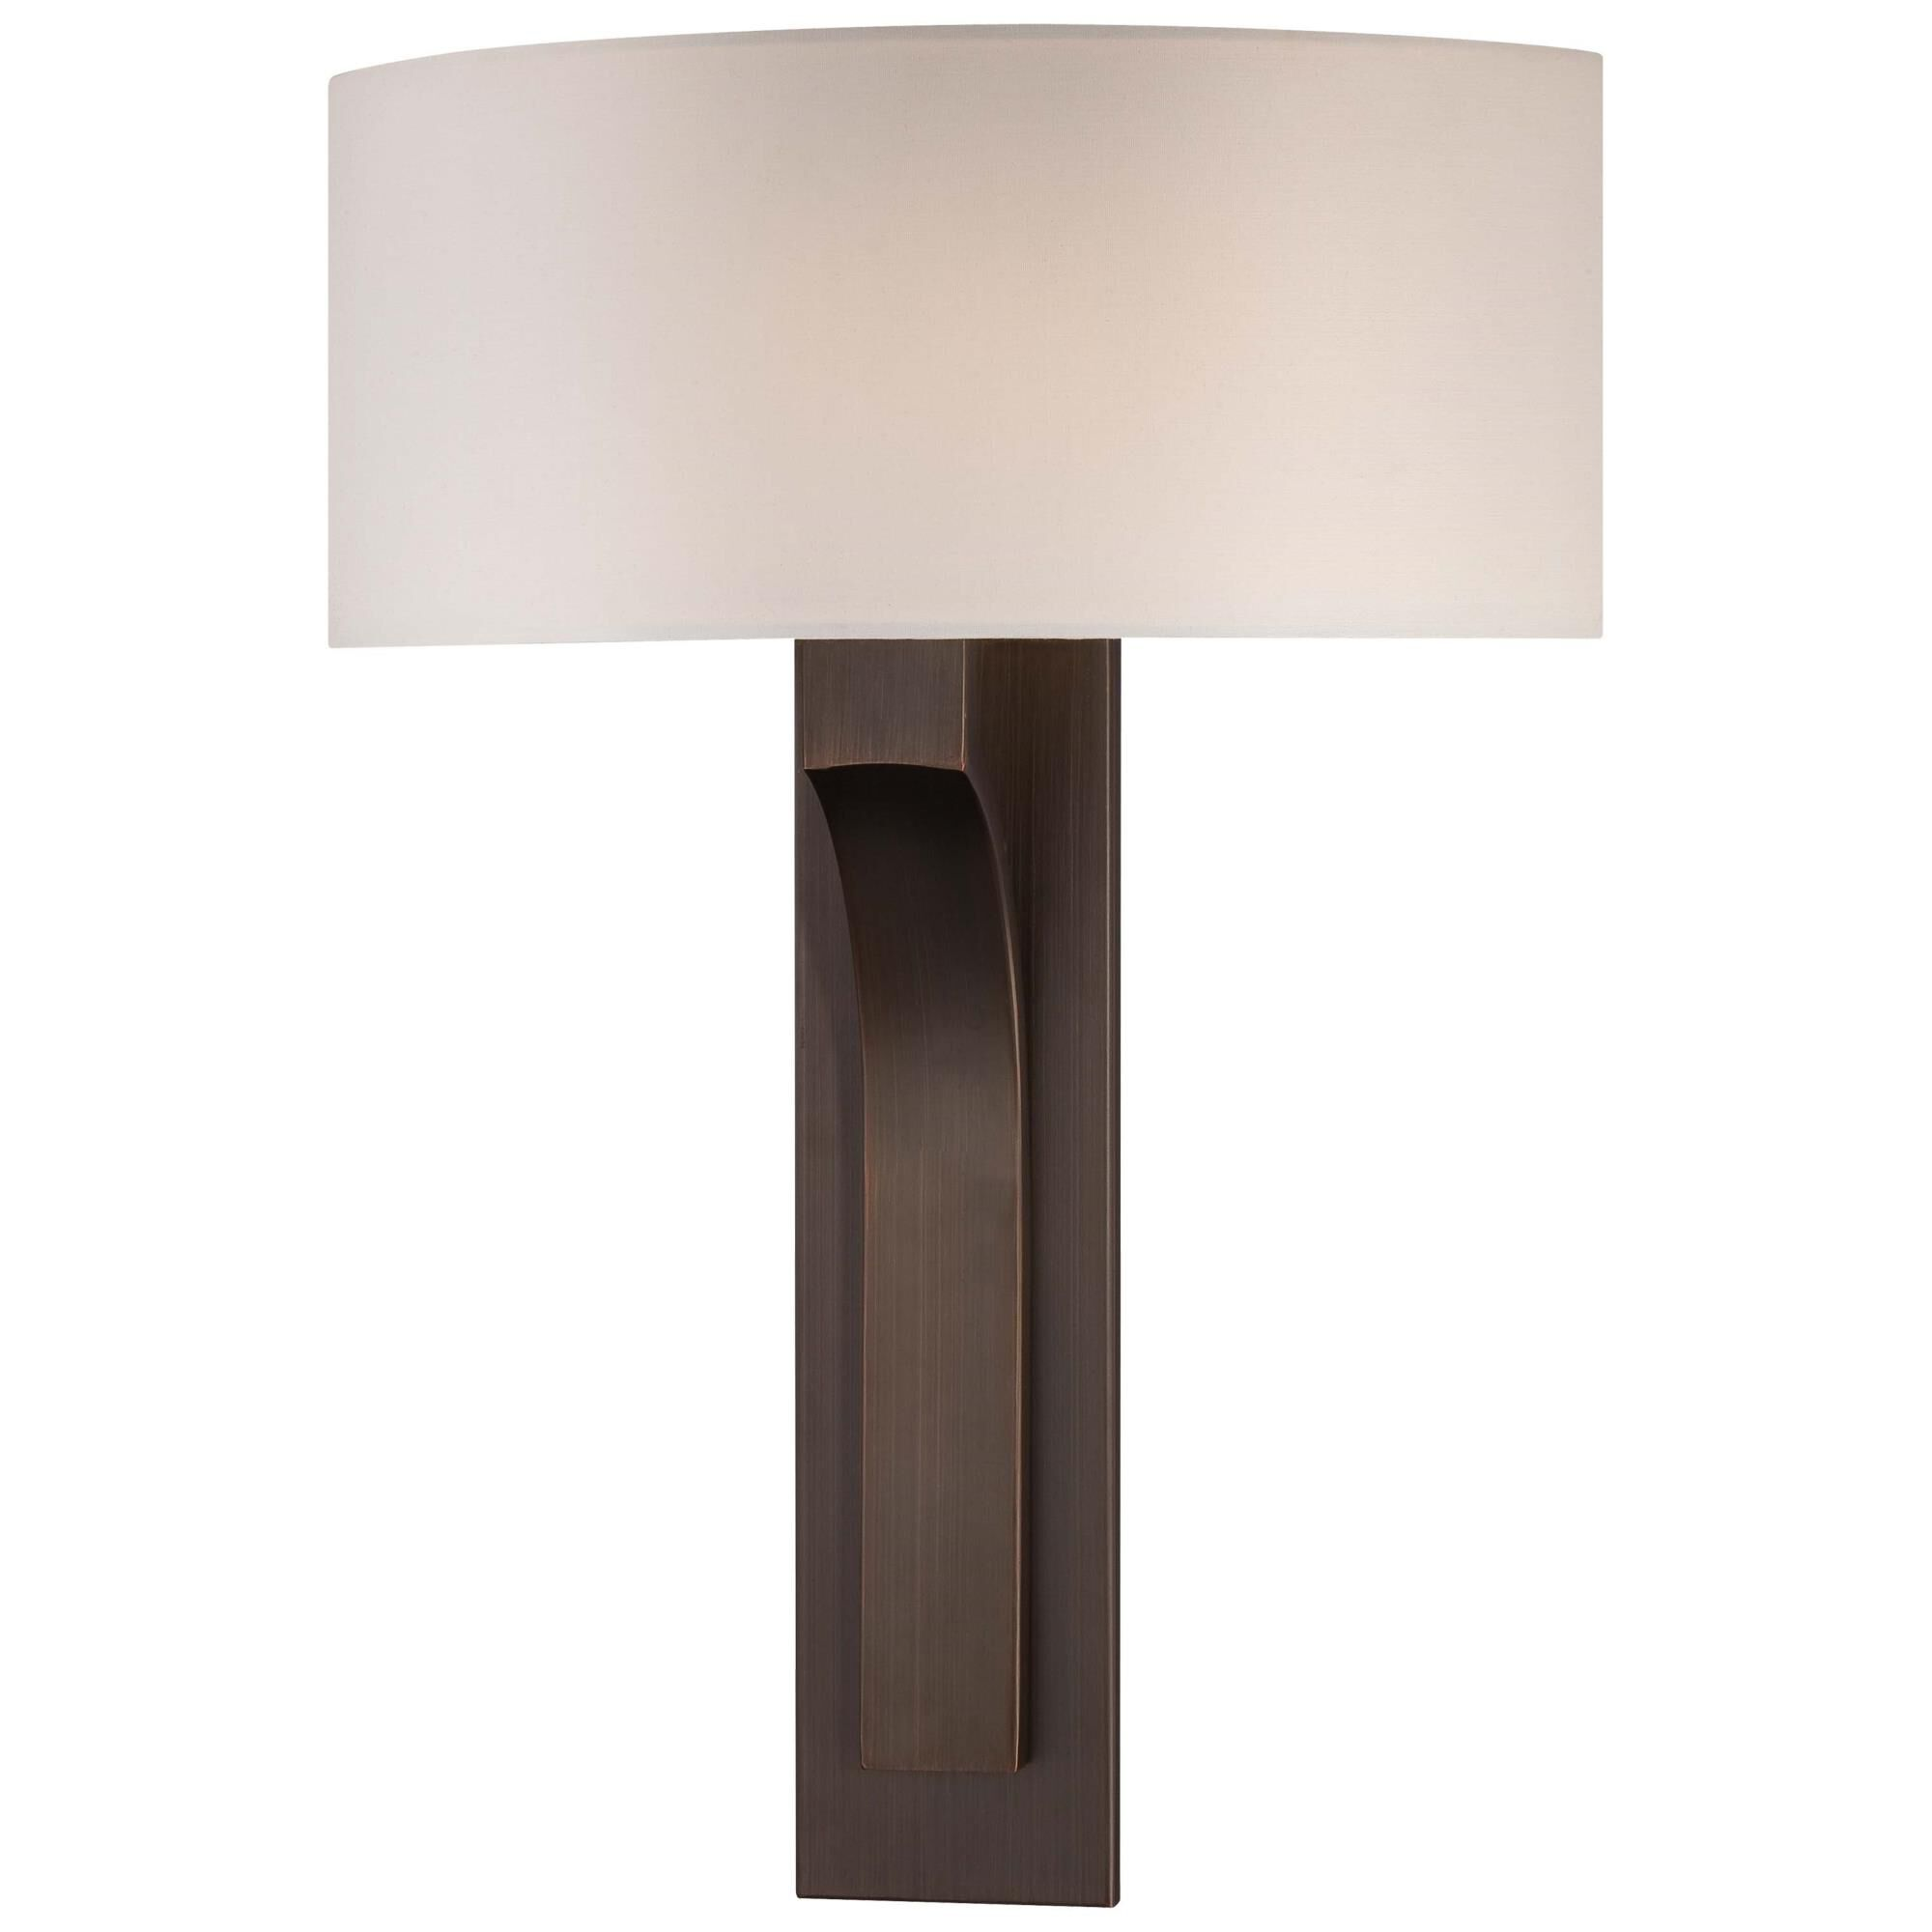 Kovacs 11 Inch Wall Sconce - P1705-647 - Transitional Wall Sconce